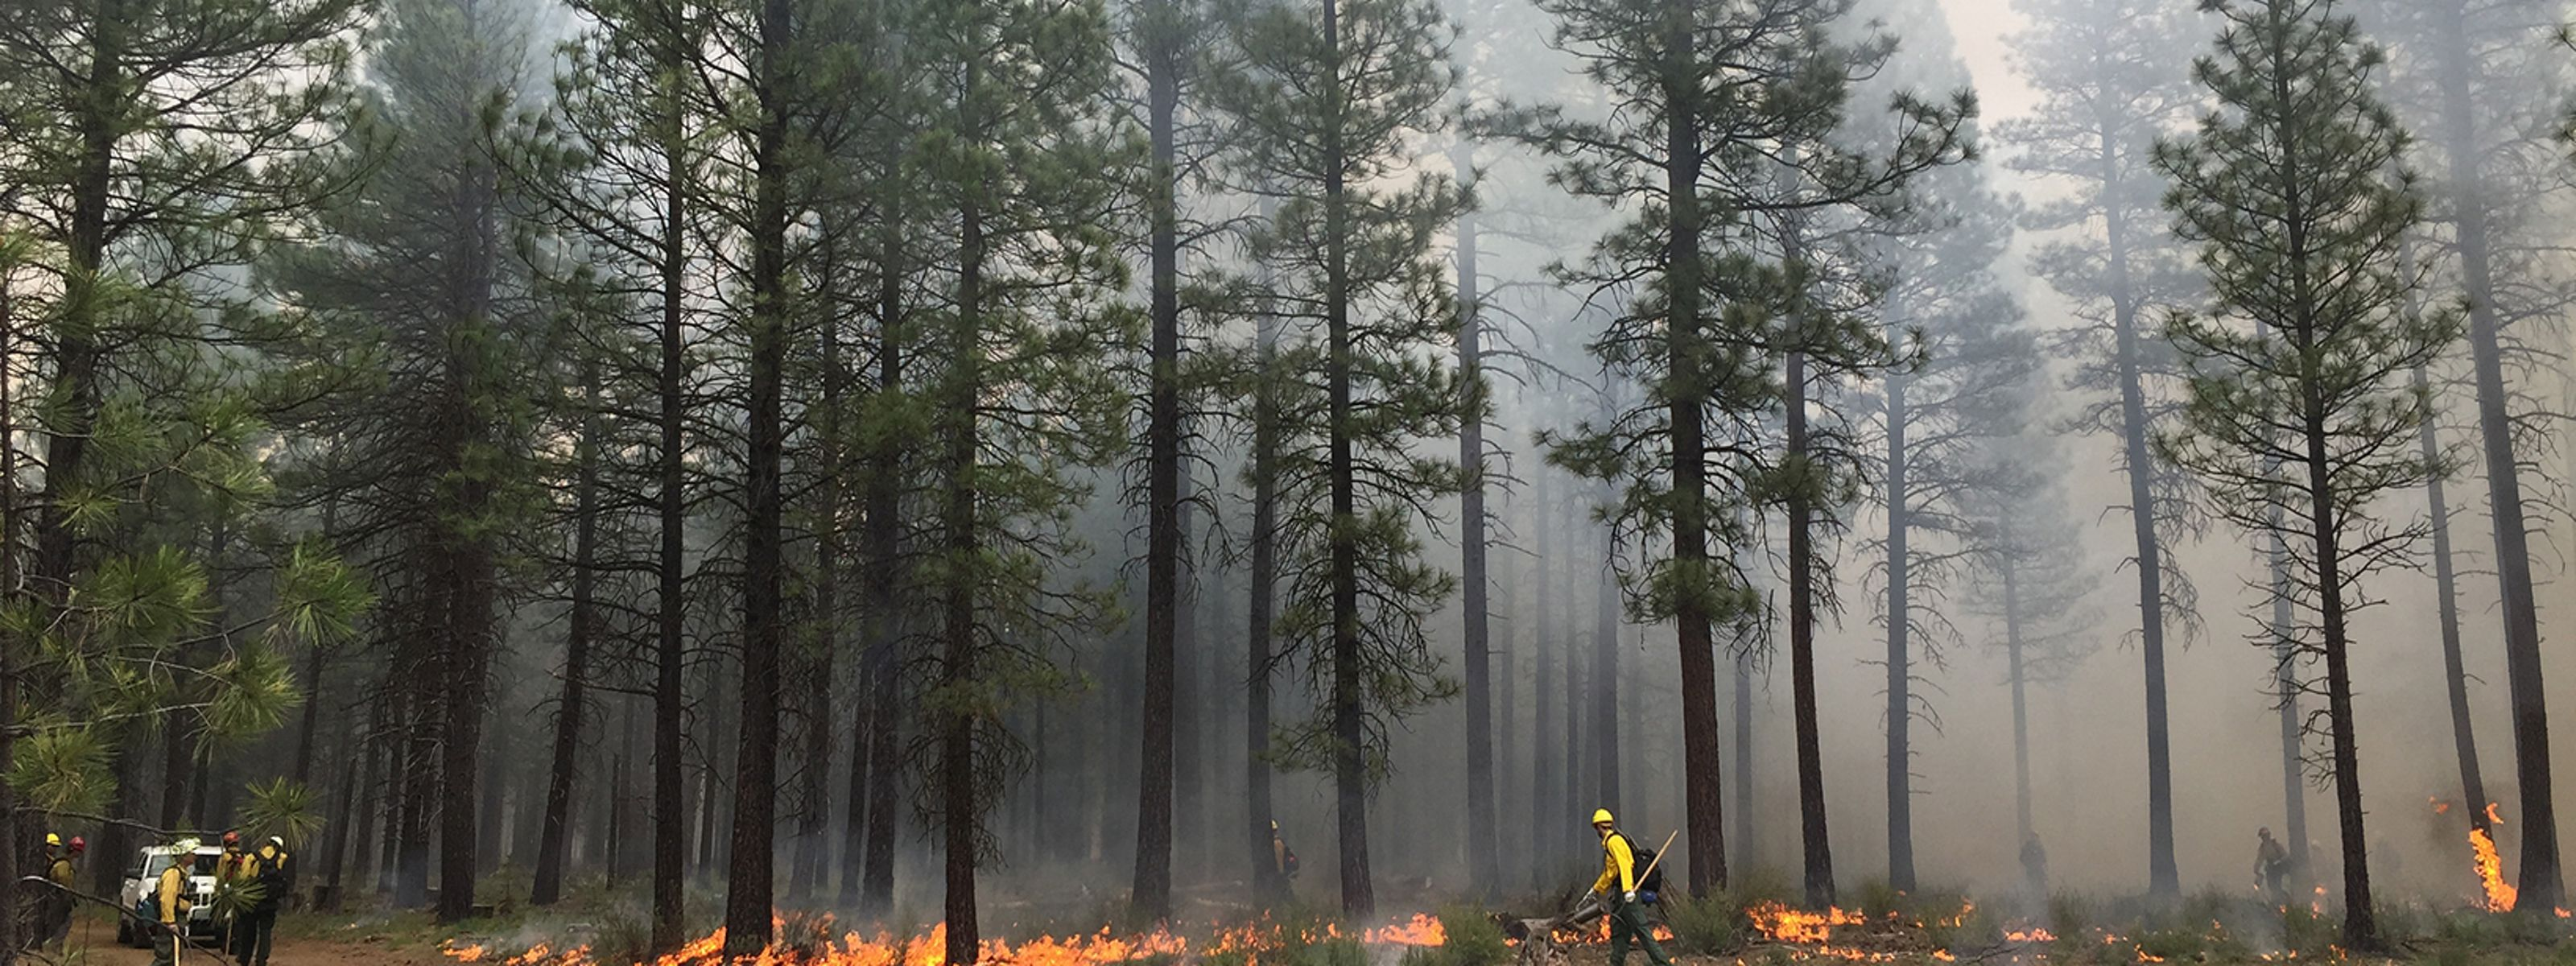 Planned fires pave the way for safer communities and fire-adapted ecosystems restored to a healthier, more resilient condition.